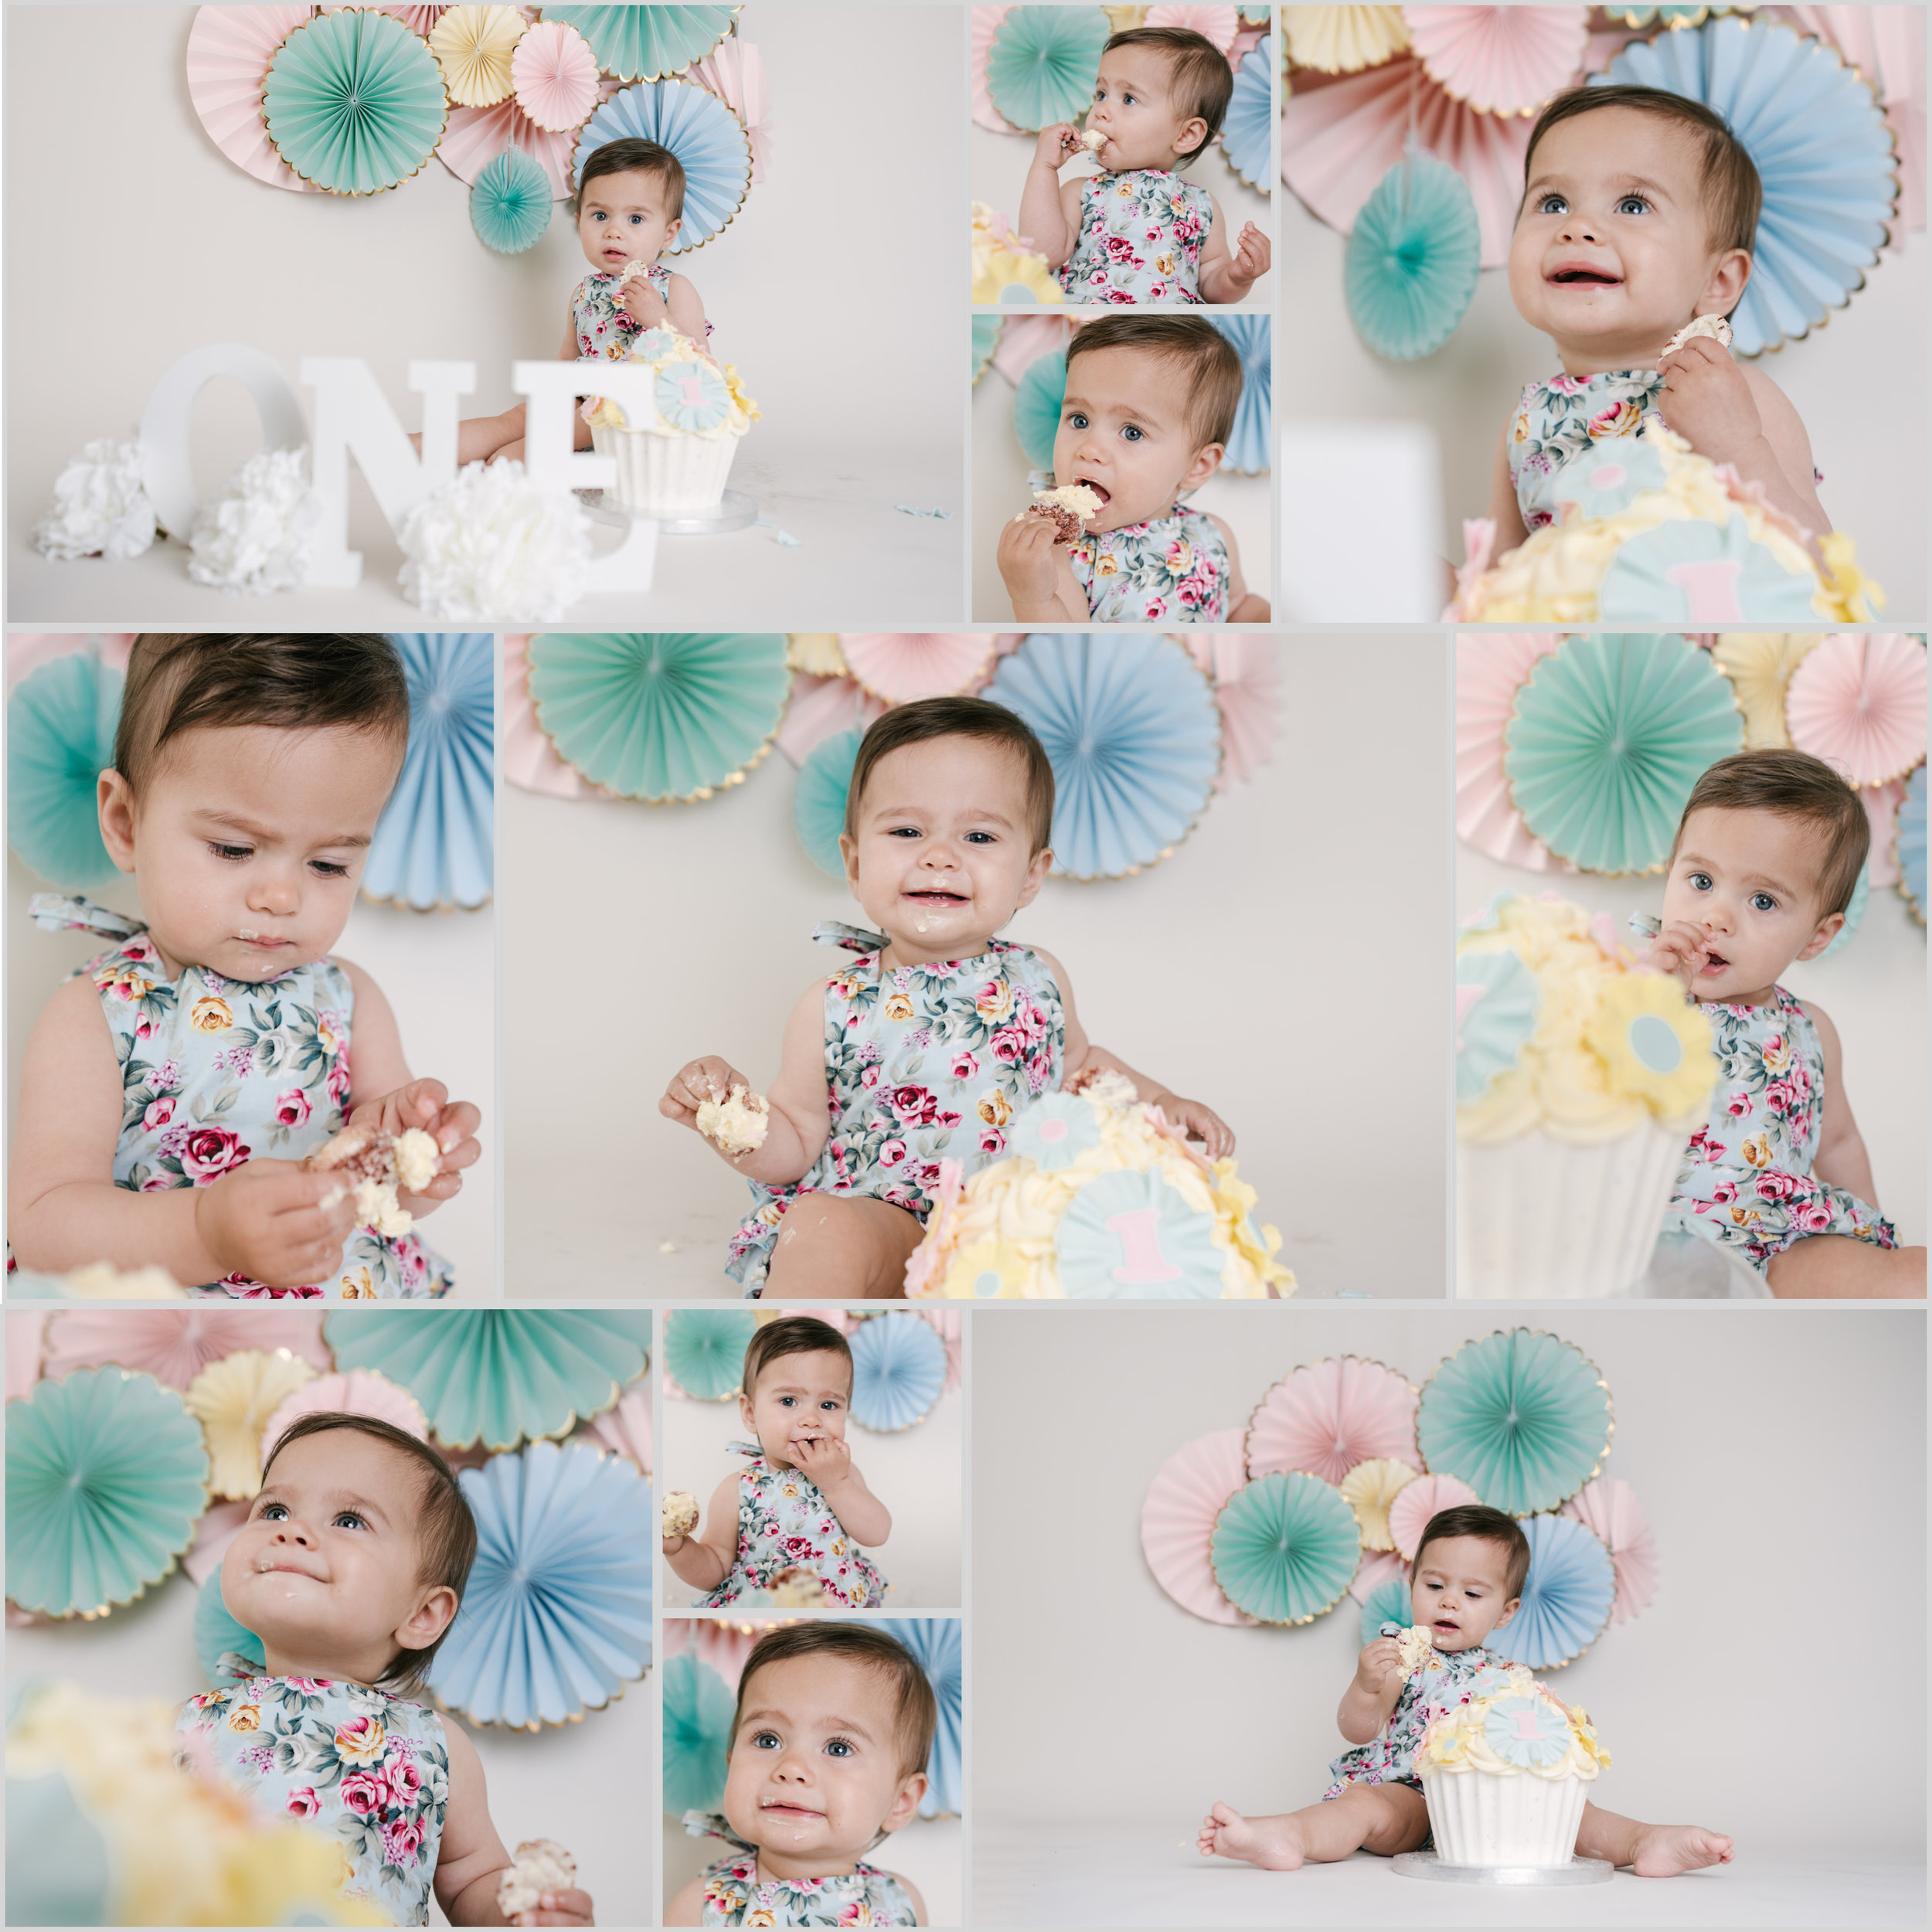 collage of a little girl wearing mint, and pink outfit with fans behind her smashing and eating cake | Cake Smash Photographer Aylesbury Buckinghamshire and Thame Oxfordshire